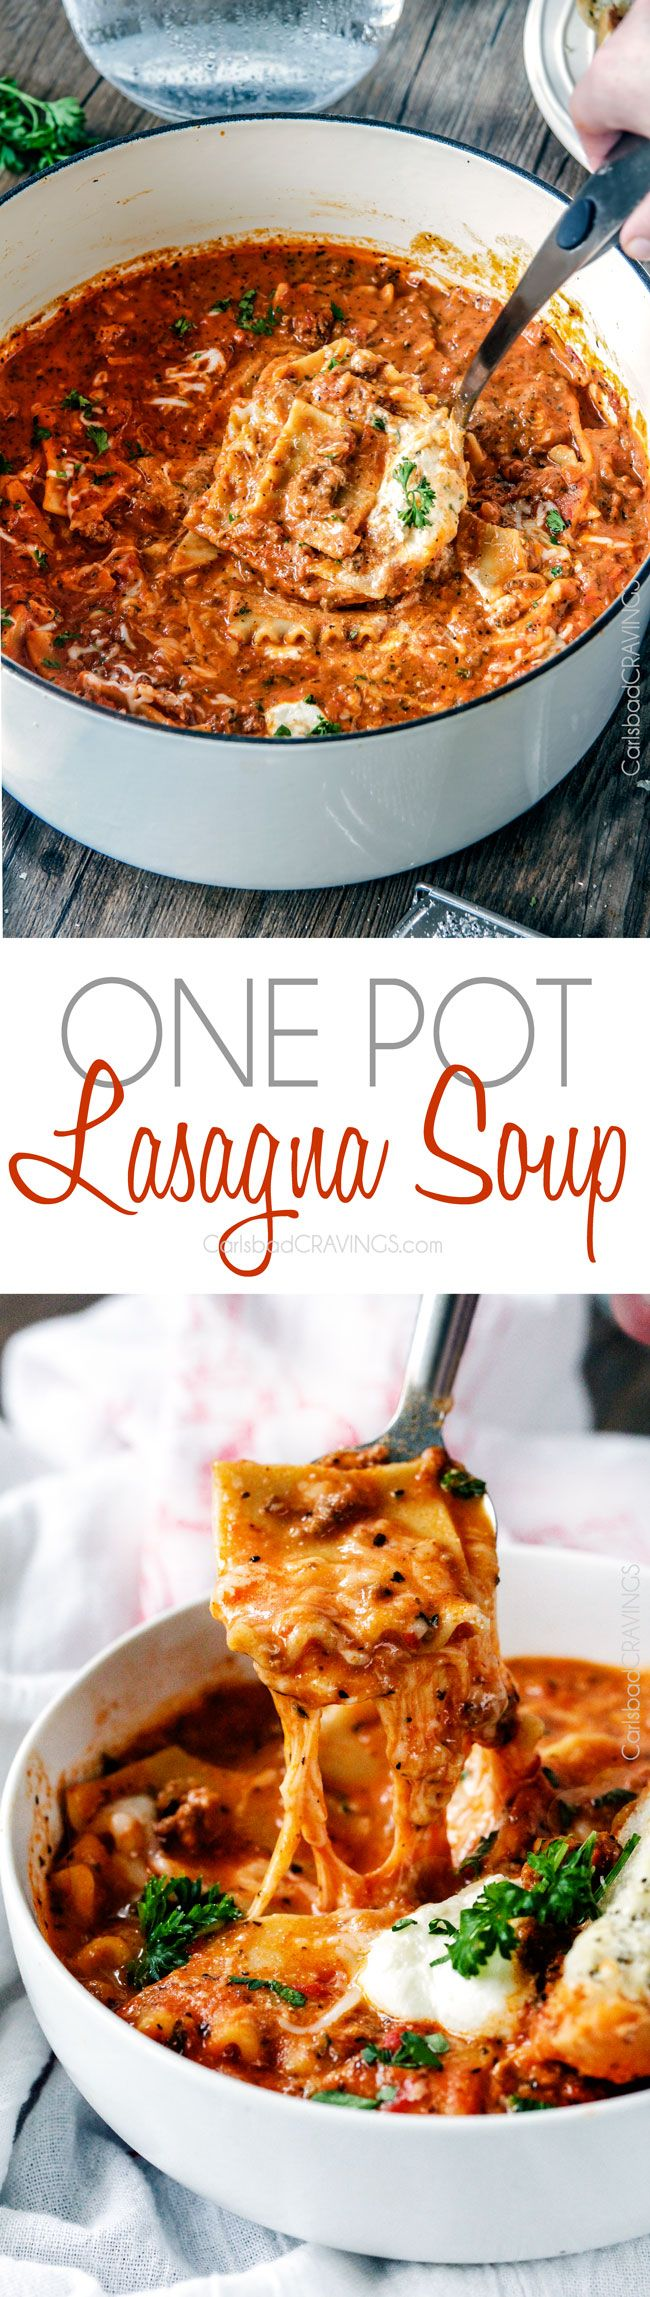 Easy One Pot Lasagna Soup tastes just like lasagna without all the layering or dishes! Simply brown your beef and dump in all ingredients and simmer away!